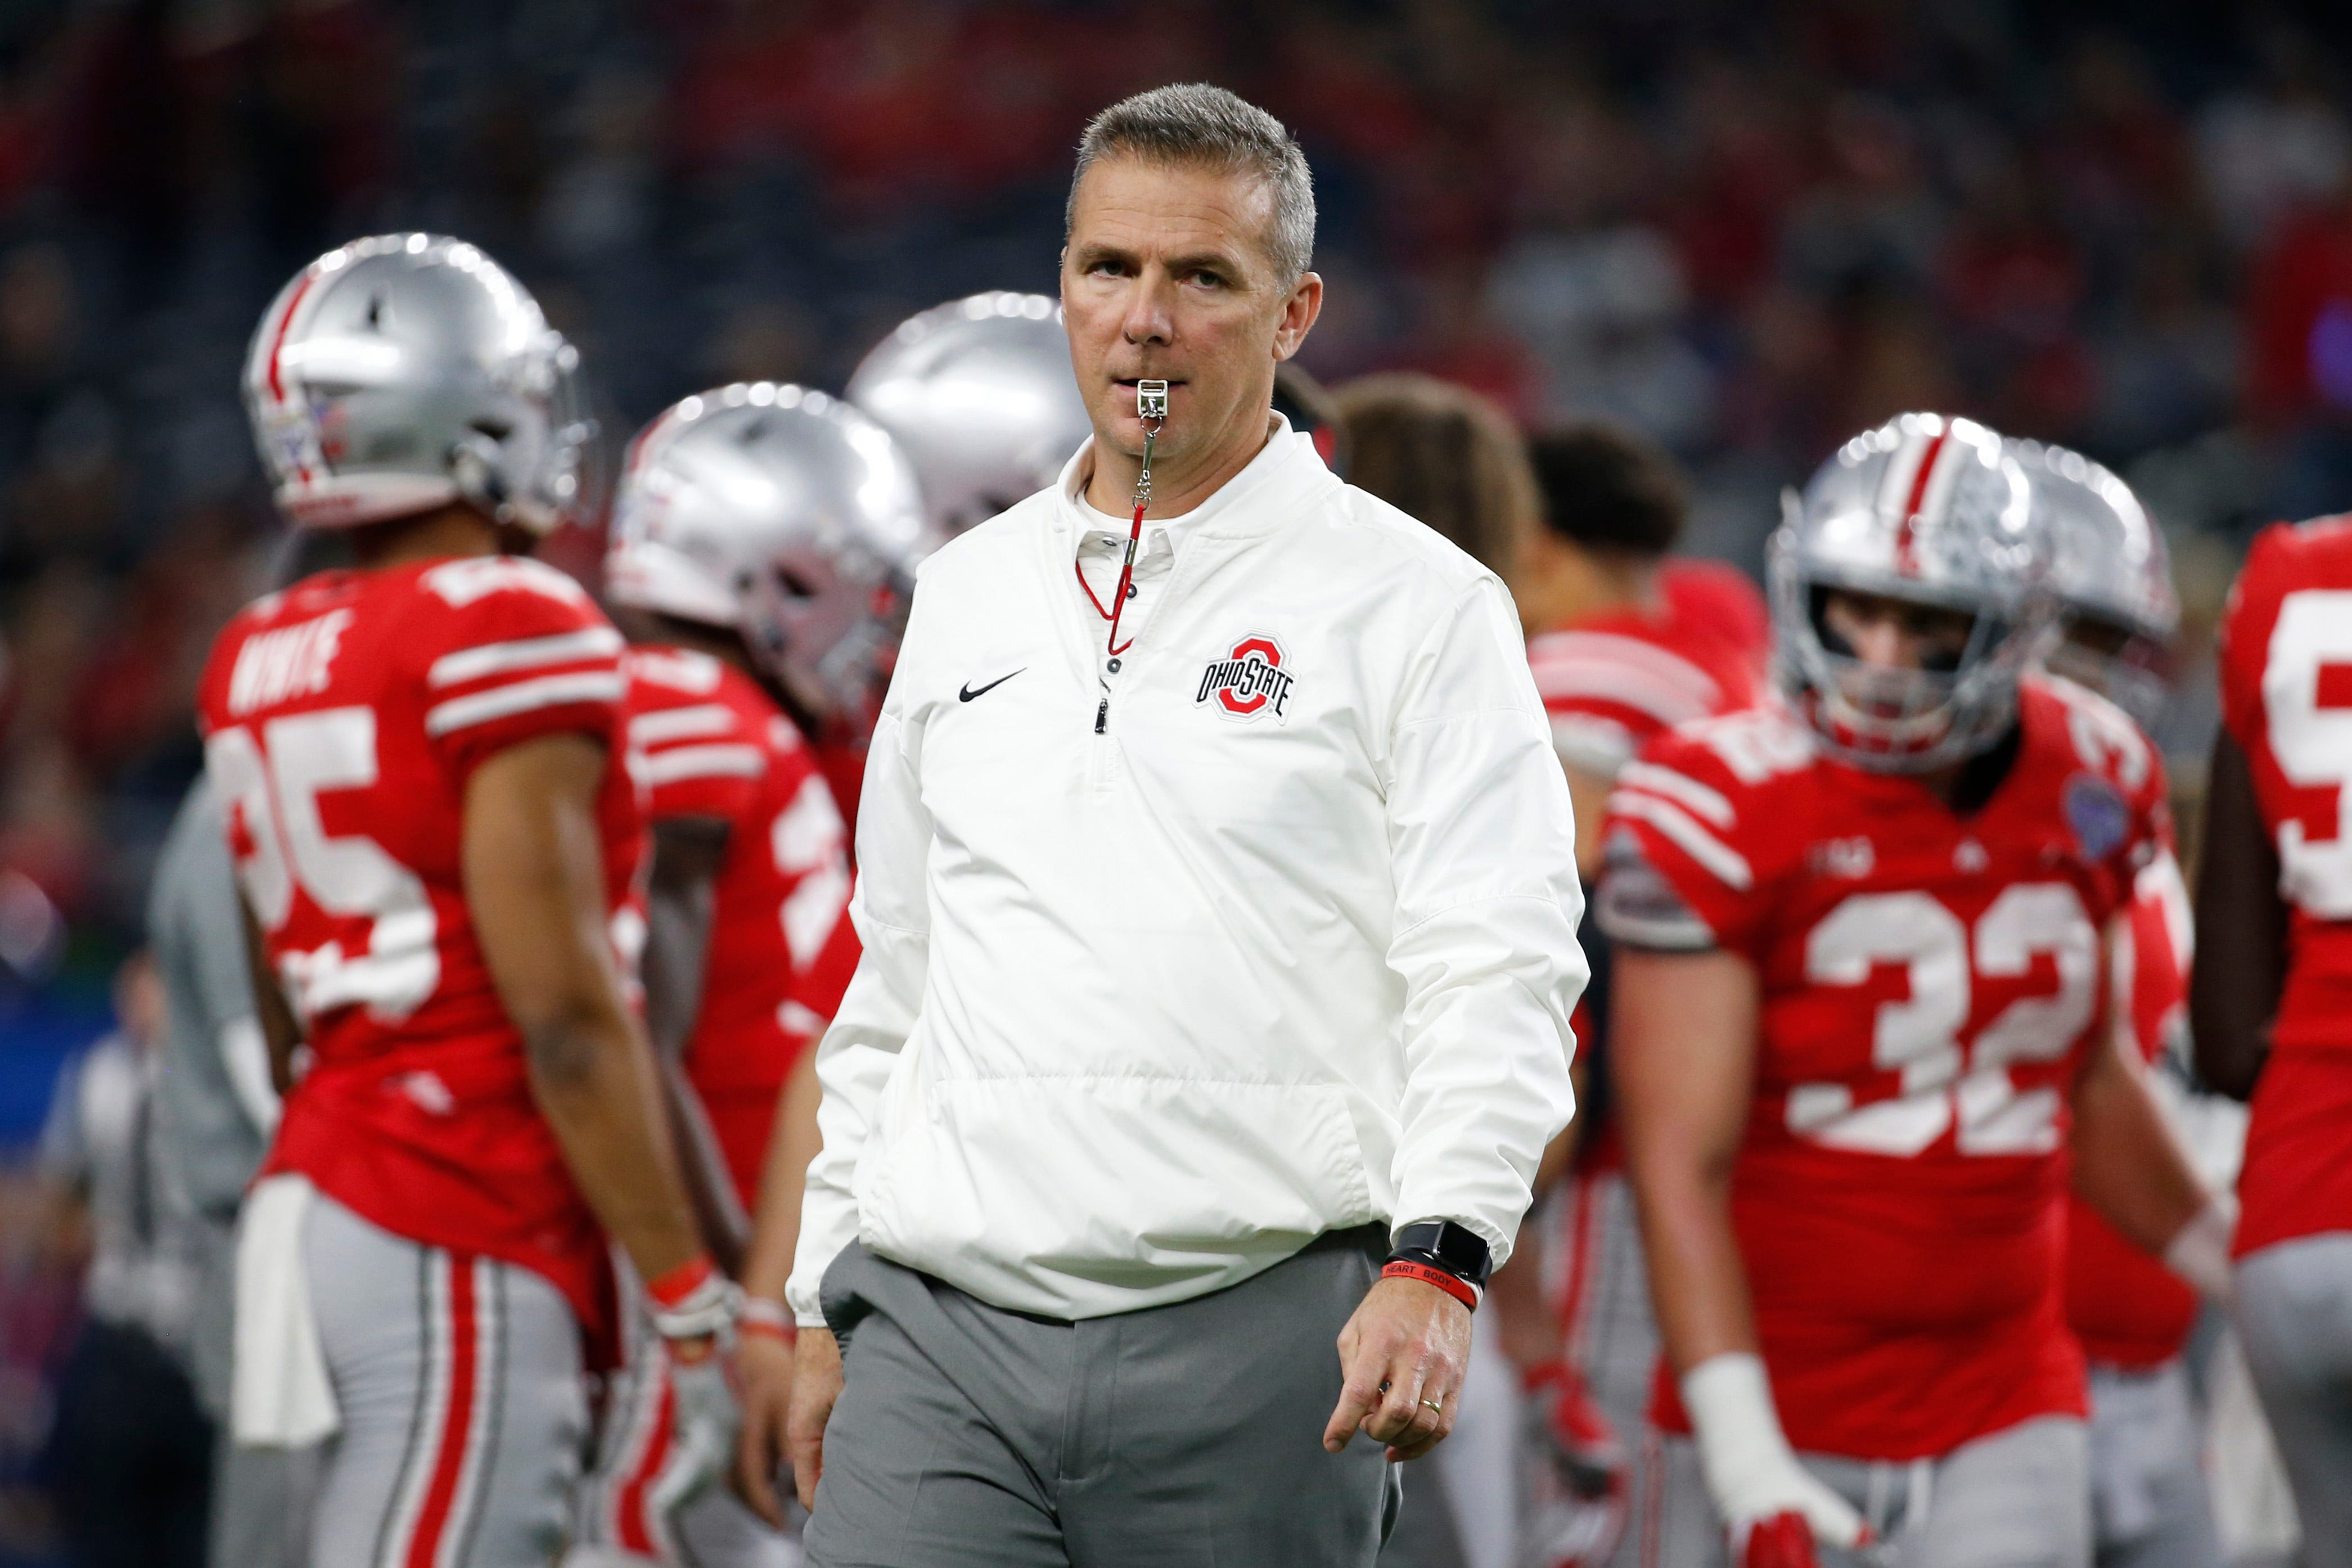 Urban Meyer close to finalizing deal to become Jacksonville Jaguars head coach